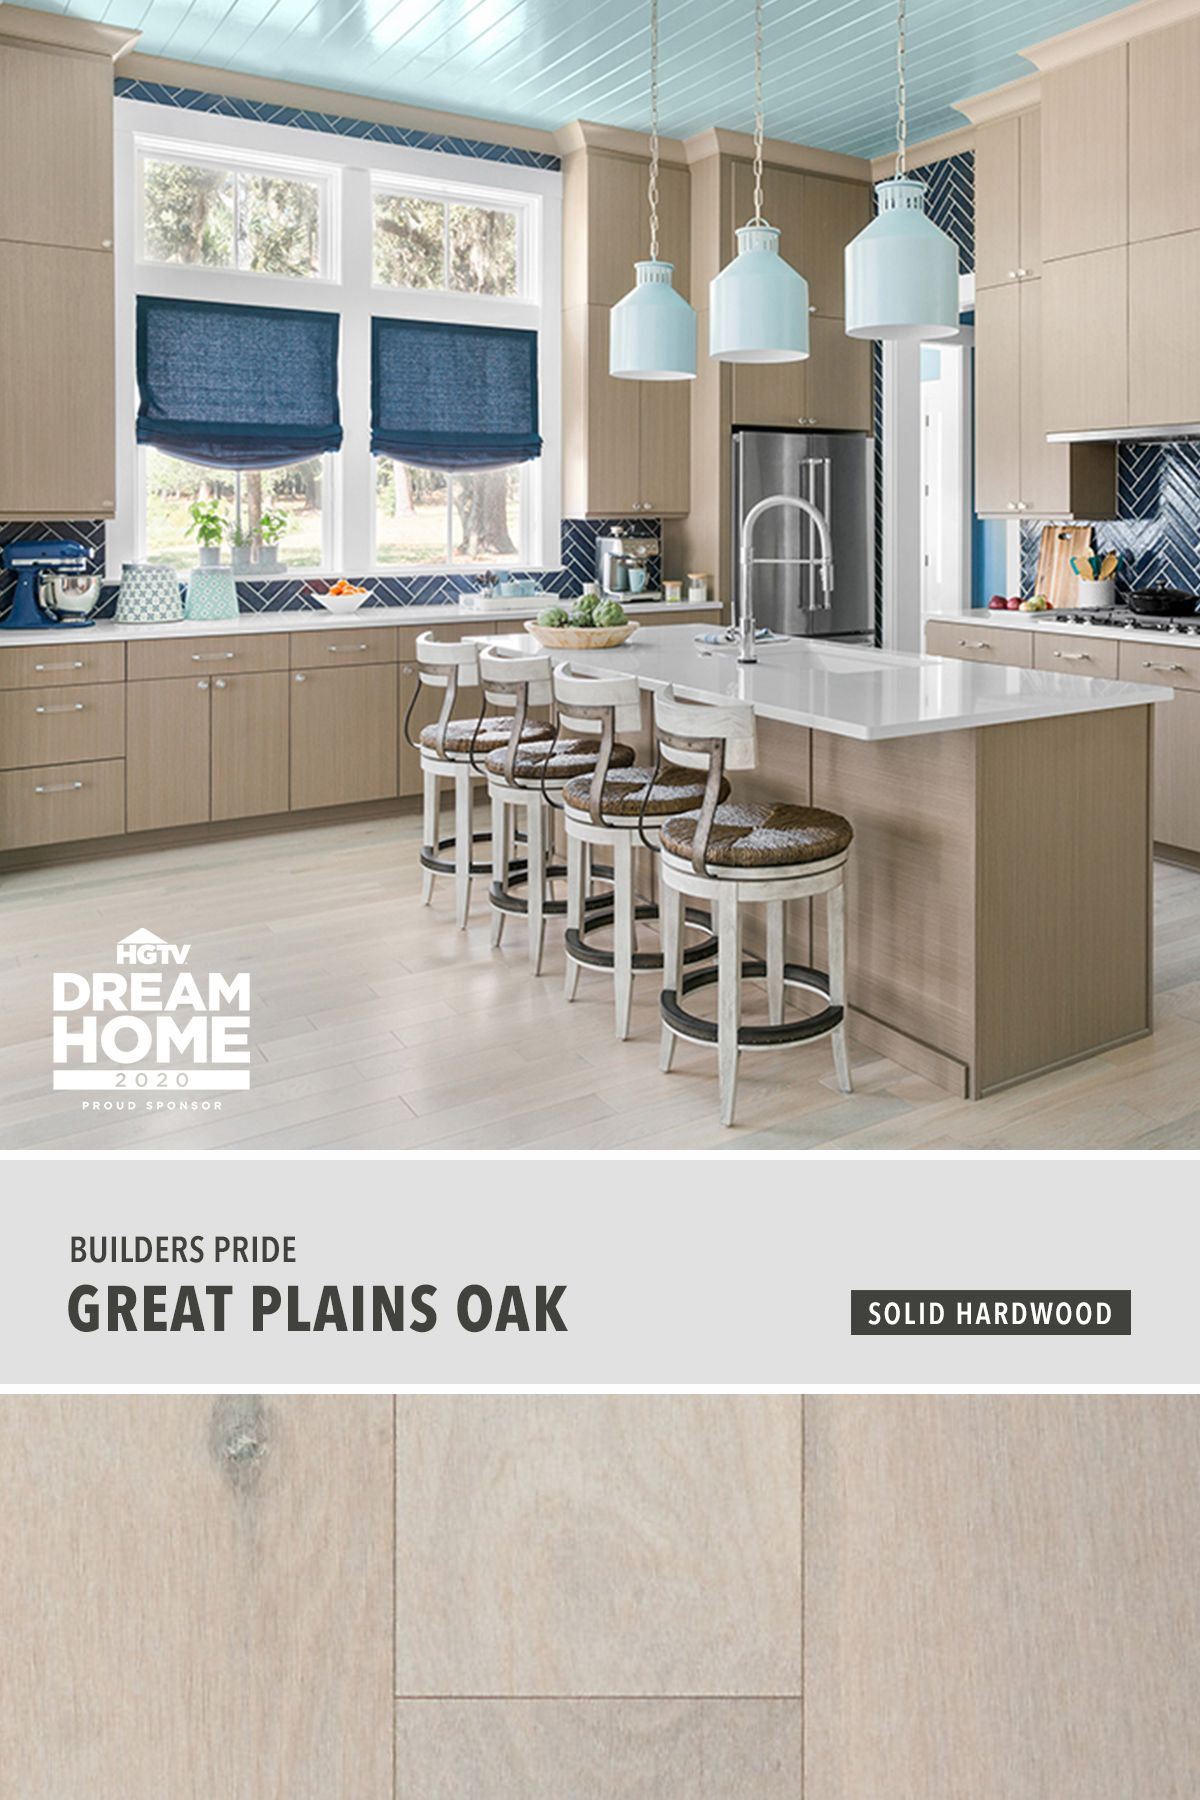 2020 Hgtv Dream Home Great Plains Oak Solid Hardwood Flooring Is A Refreshing Neutral To Set The Stage For Char In 2020 Solid Hardwood Floors Hardwood Floors Flooring